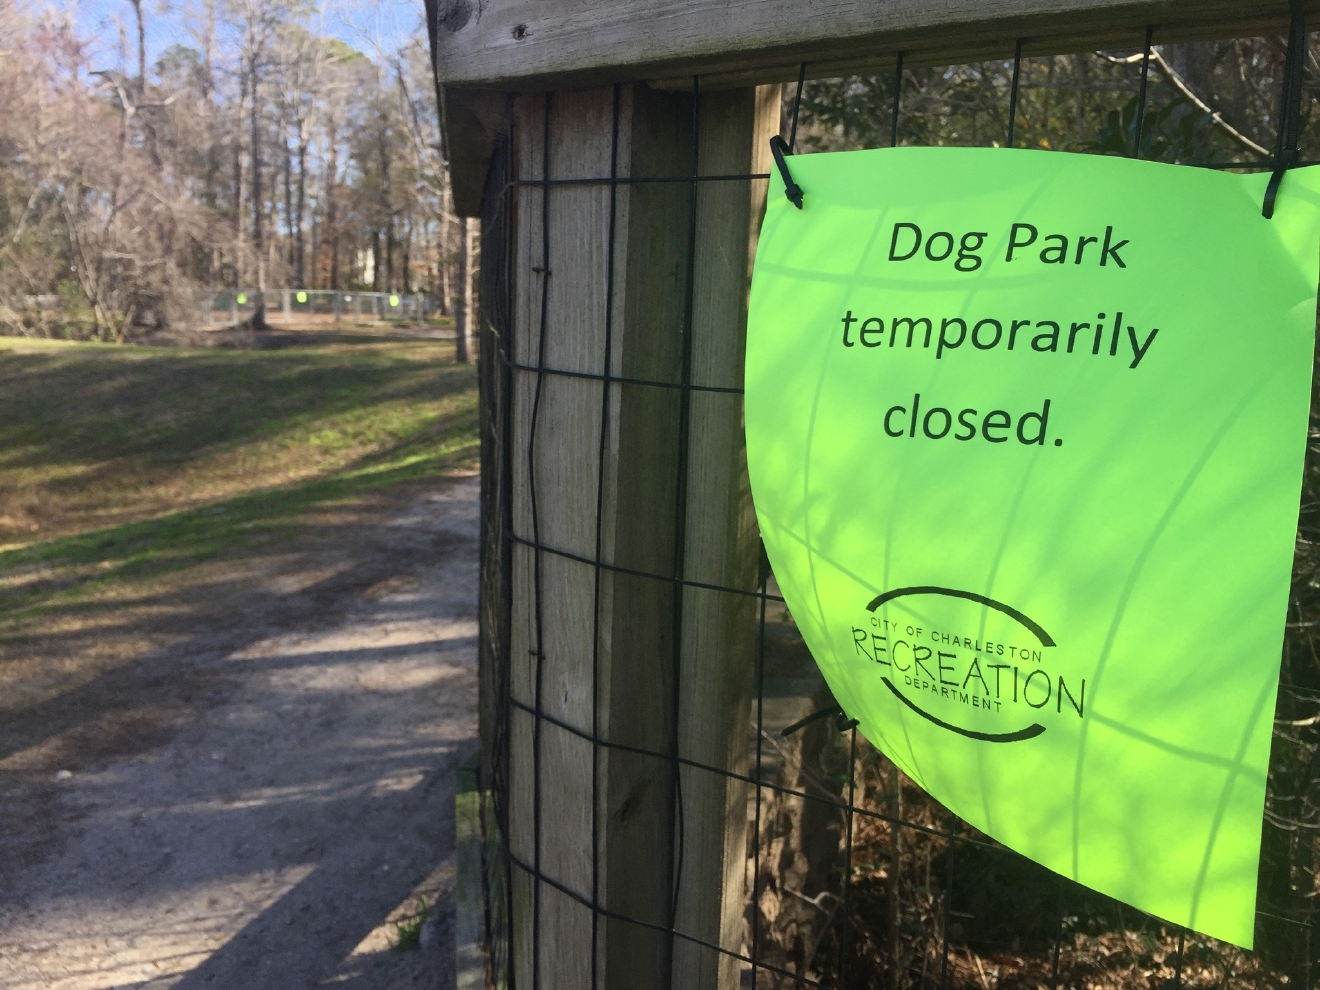 City officials say the dog park was tested for toxins and after results coming back clean, the park is expected to be open Tuesday. (WCIV)